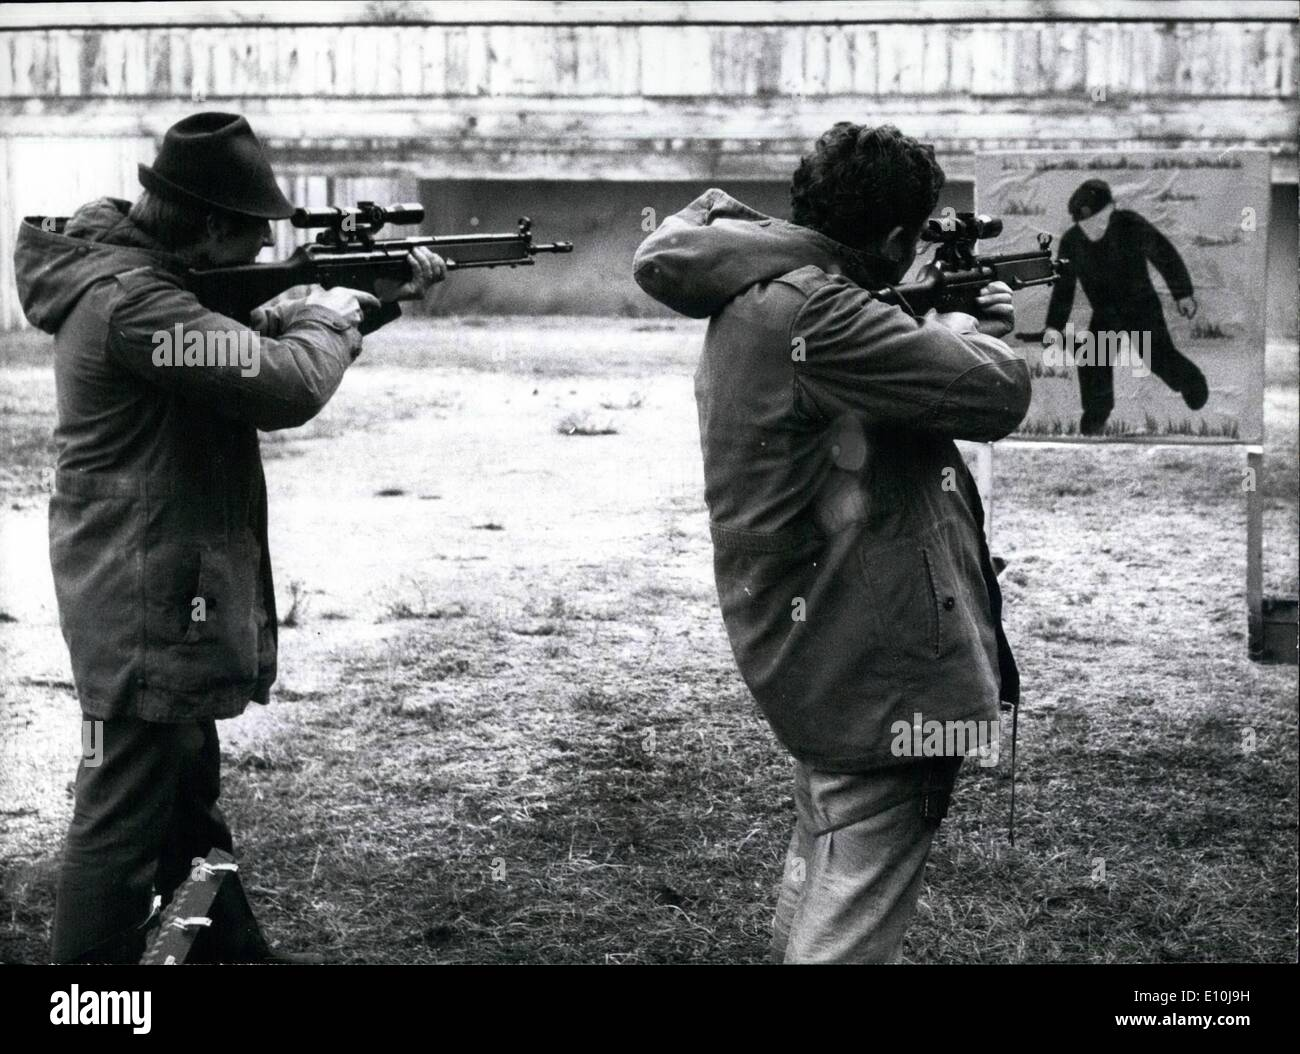 Dec. 12, 1972 - Sharp Shooter Training To Consumer Terrorism And Force The Munich bloodbath during the Olympic Games 1972 caused to a scheme for setting up a sharpshooter-training for special policemen. At present 30 sharpshooters from the Munich Police for force (picture) are on an intensive course which will give them proficiency with both service revolvers and rifles by the end. The practical formation comprises a training with shooting on targets, air-balloons and mobile targets such as silhouette targets - Stock Image